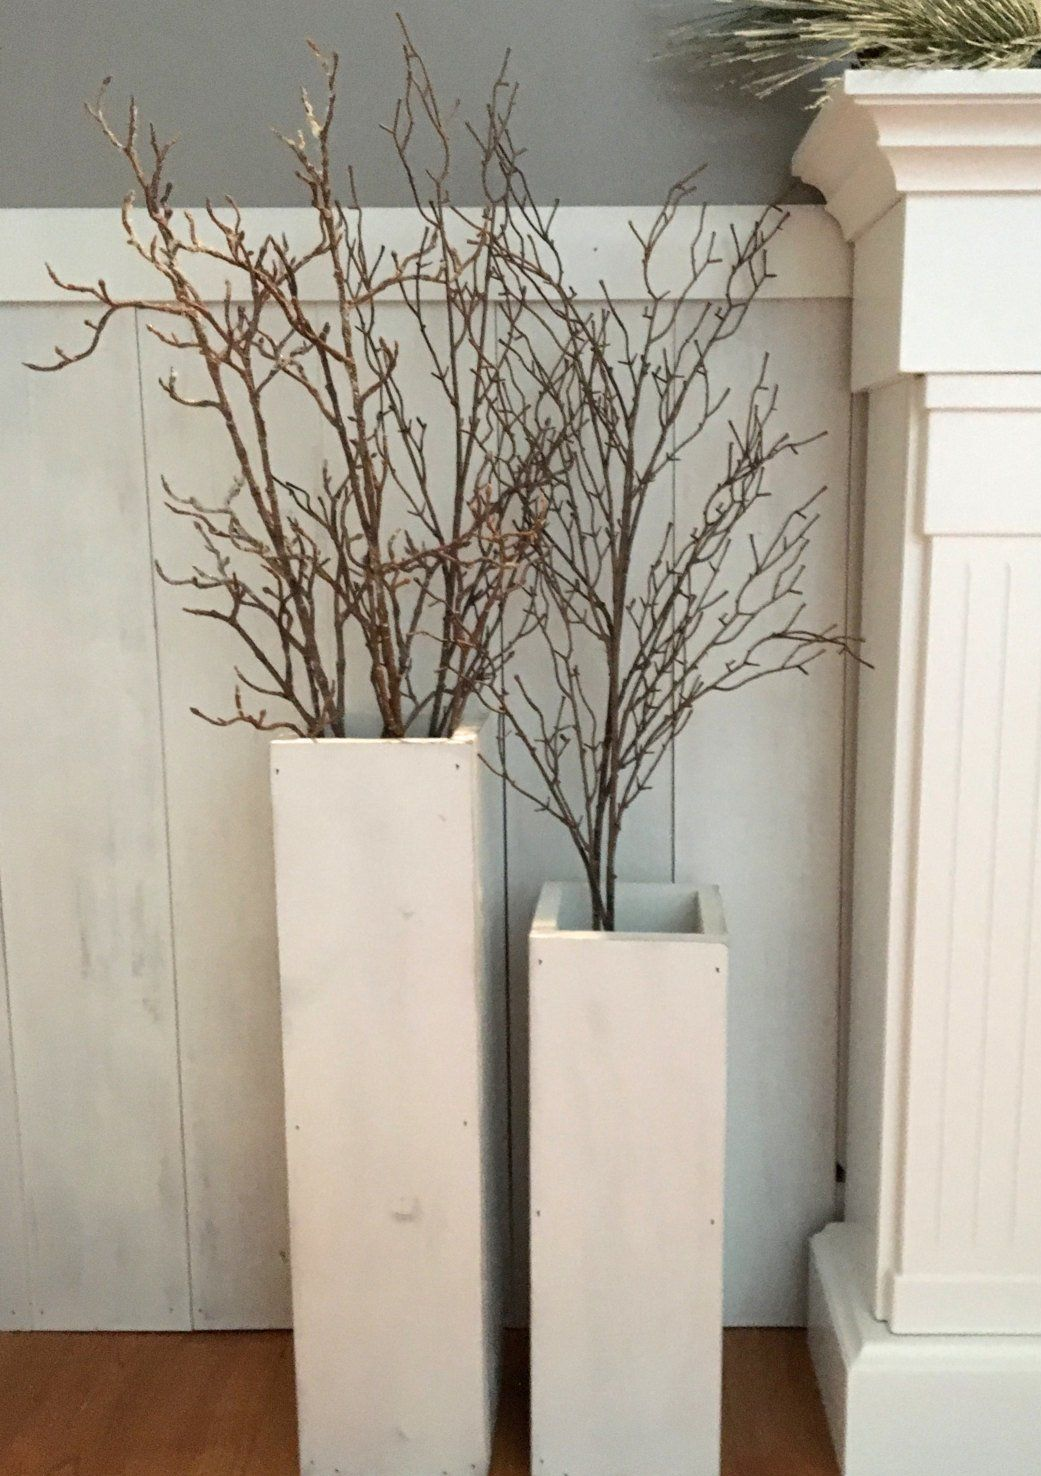 White Wooden Vases Reclaimed Wood Distressed Wood Floor Etsy In 2021 Large Floor Vase Floor Vase Decor Porch Vases